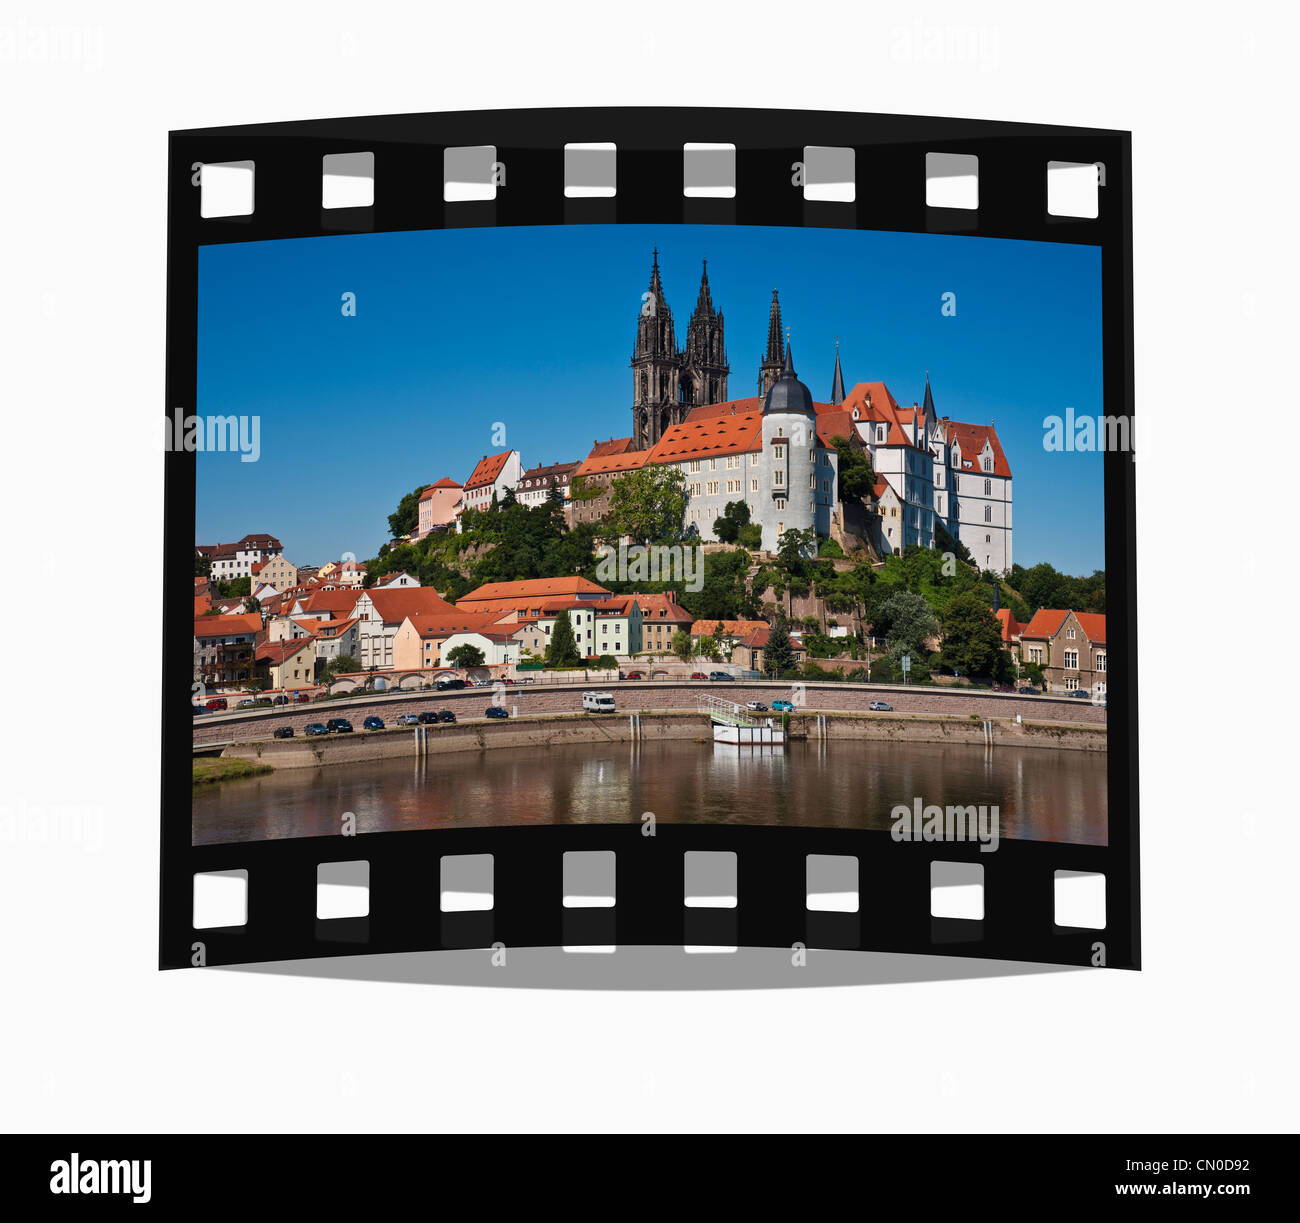 Filmstrip: View over the Elbe river to Albrechtsburg Castle, Meissen, Saxony, Germany, Europe - Stock Image